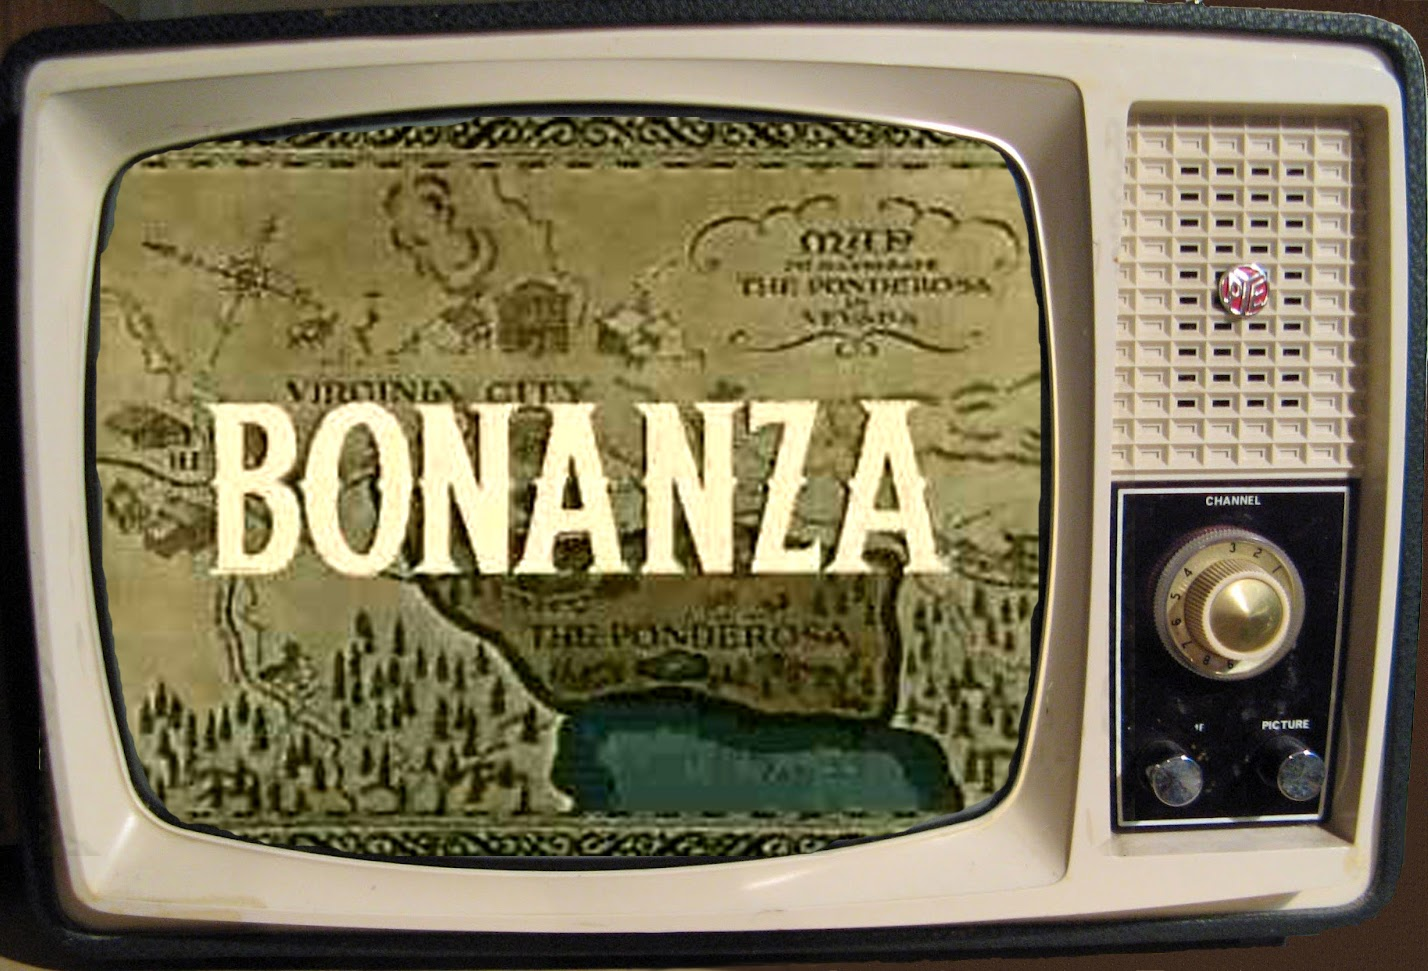 bonanza mature singles There are many mature singles looking for a date online tonight - and we can put you in touch with them if you're looking to date a mature man or woman, we have the site for you, local mature singles.